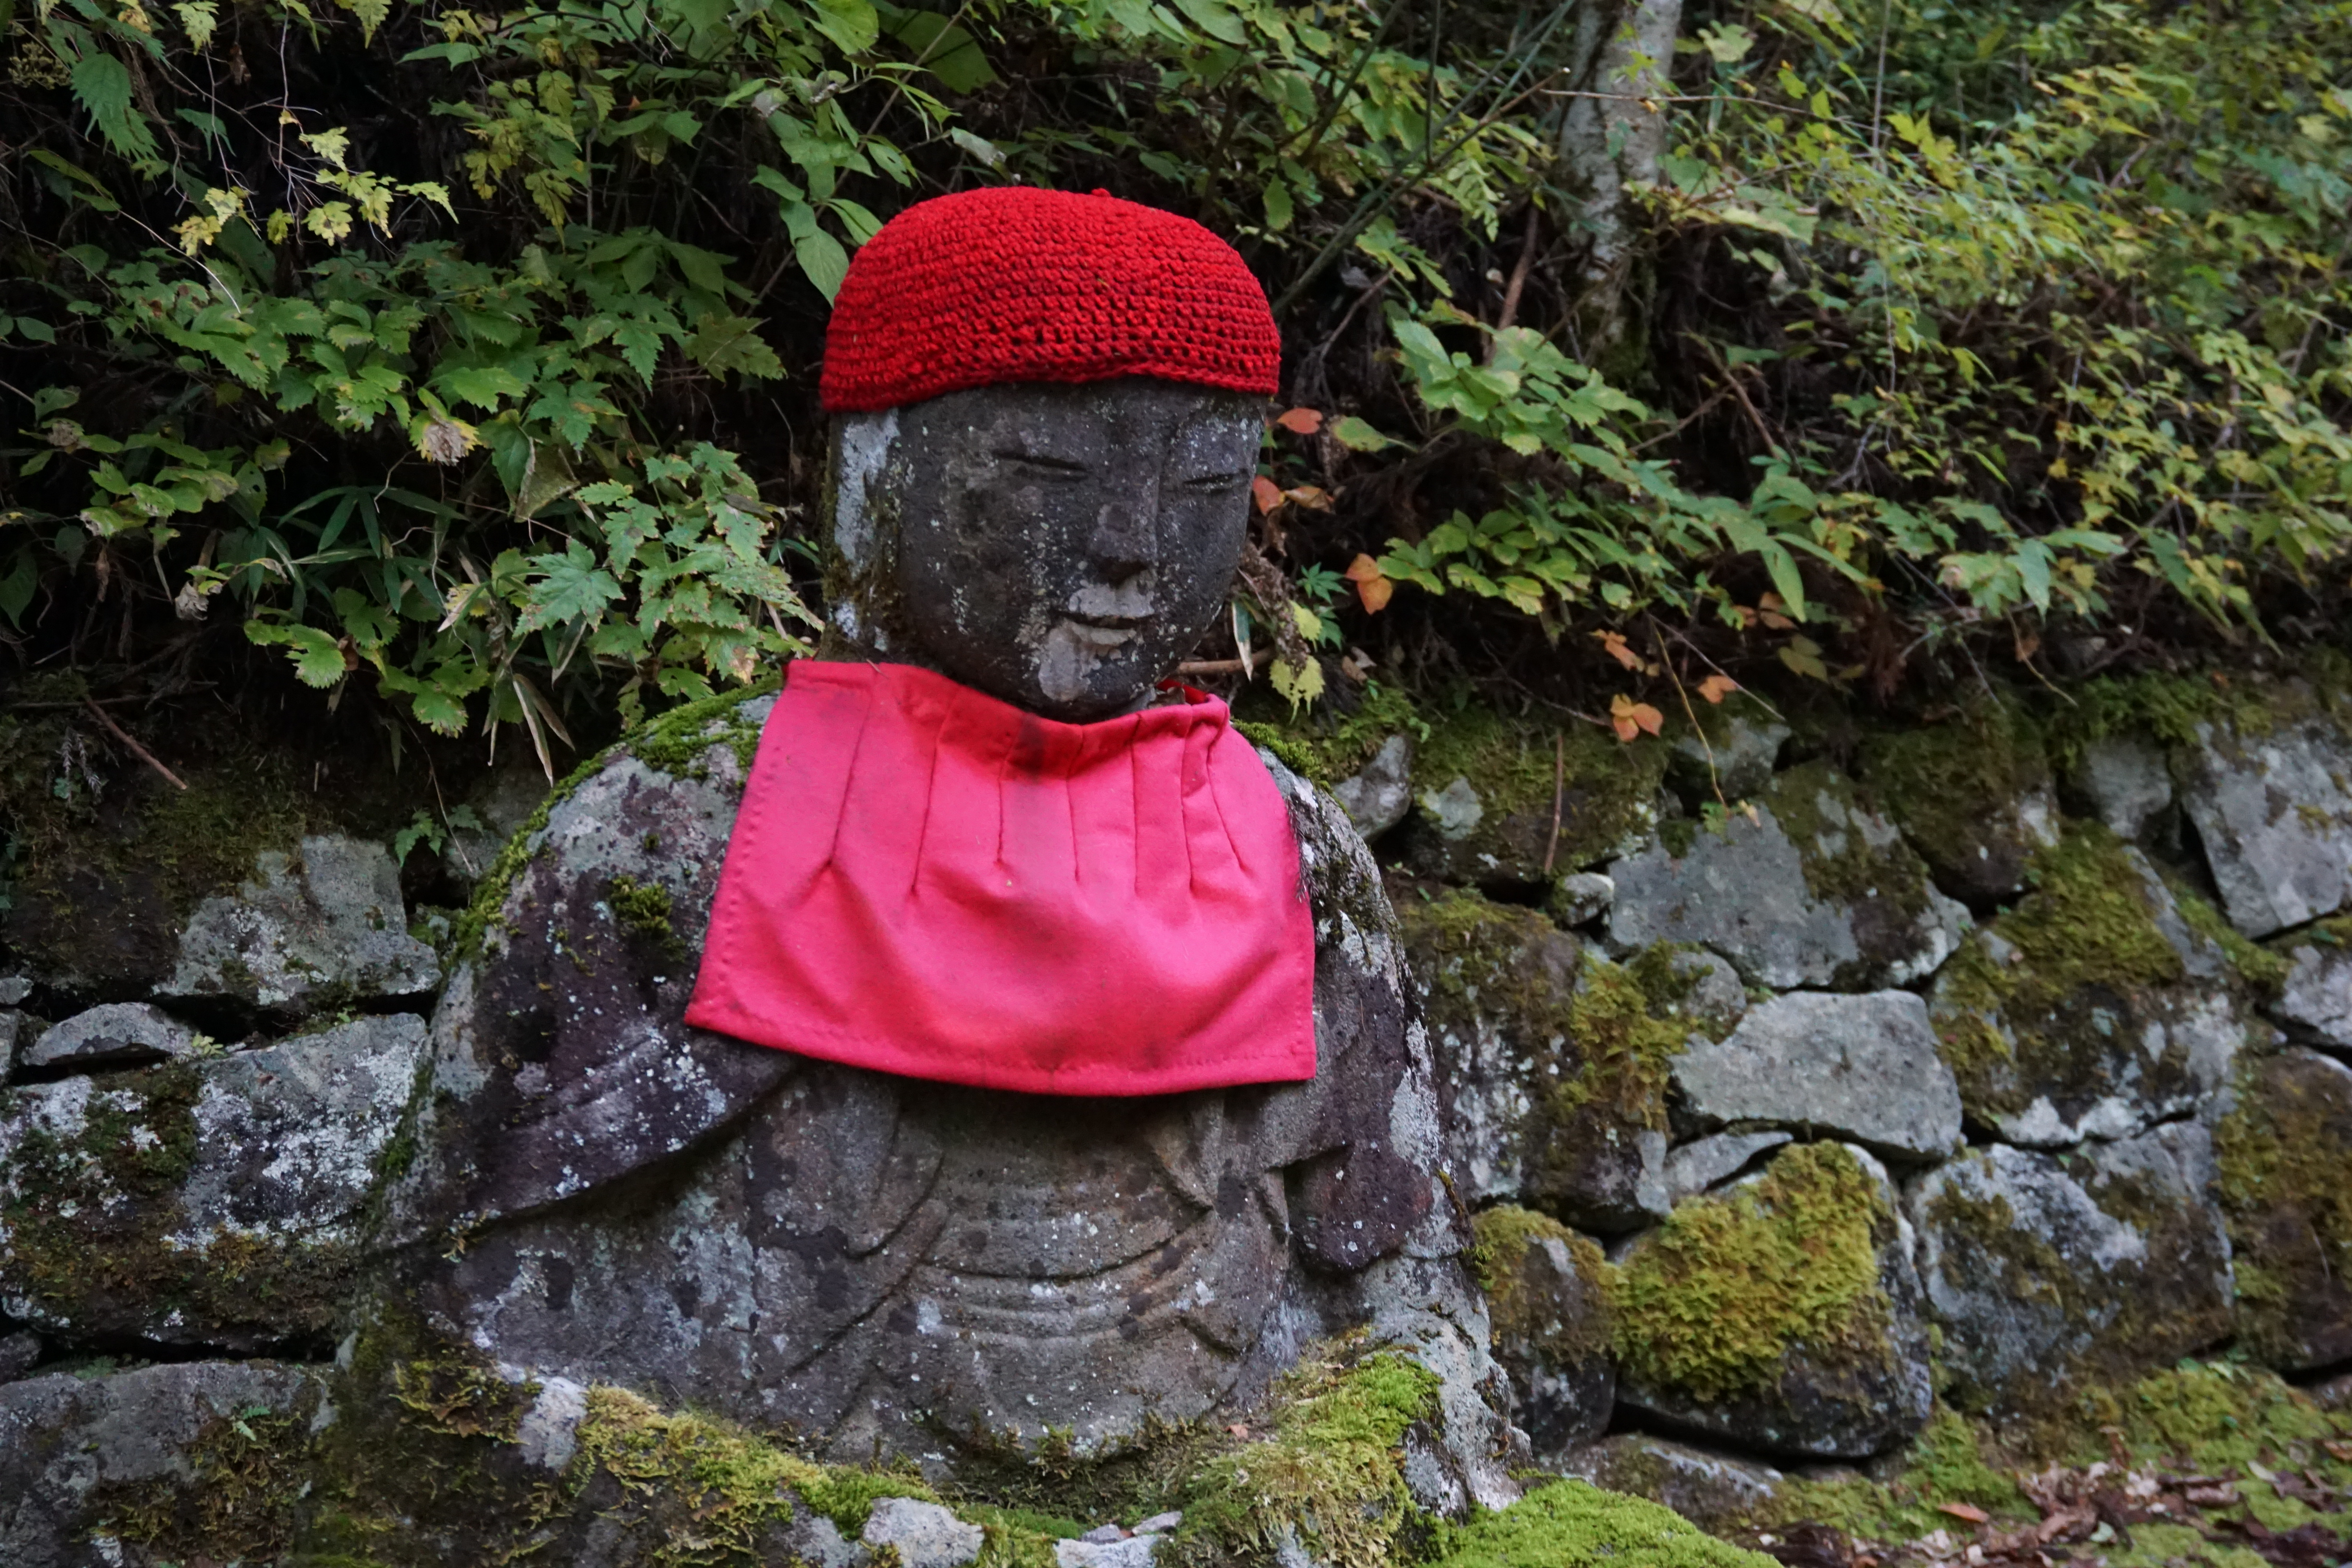 Stone Jizo statue with a red crocheted cap and a bib, apron, sitting in the forest in Nikko, surrounded by moss covered rocks